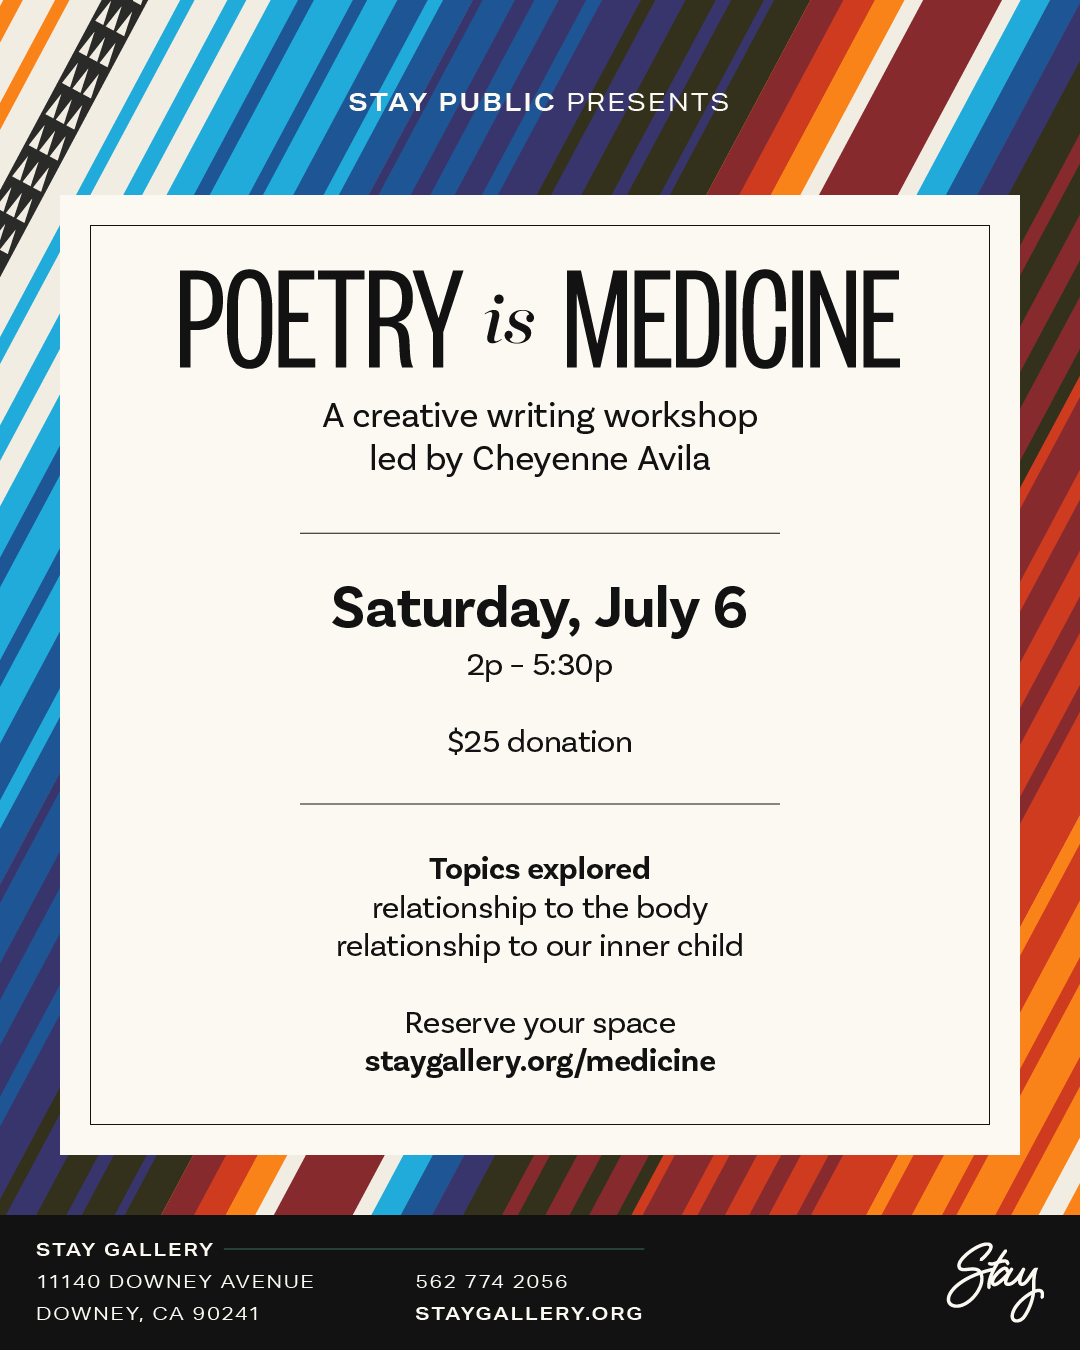 stay-gallery-poetry-medicine-flyer.png